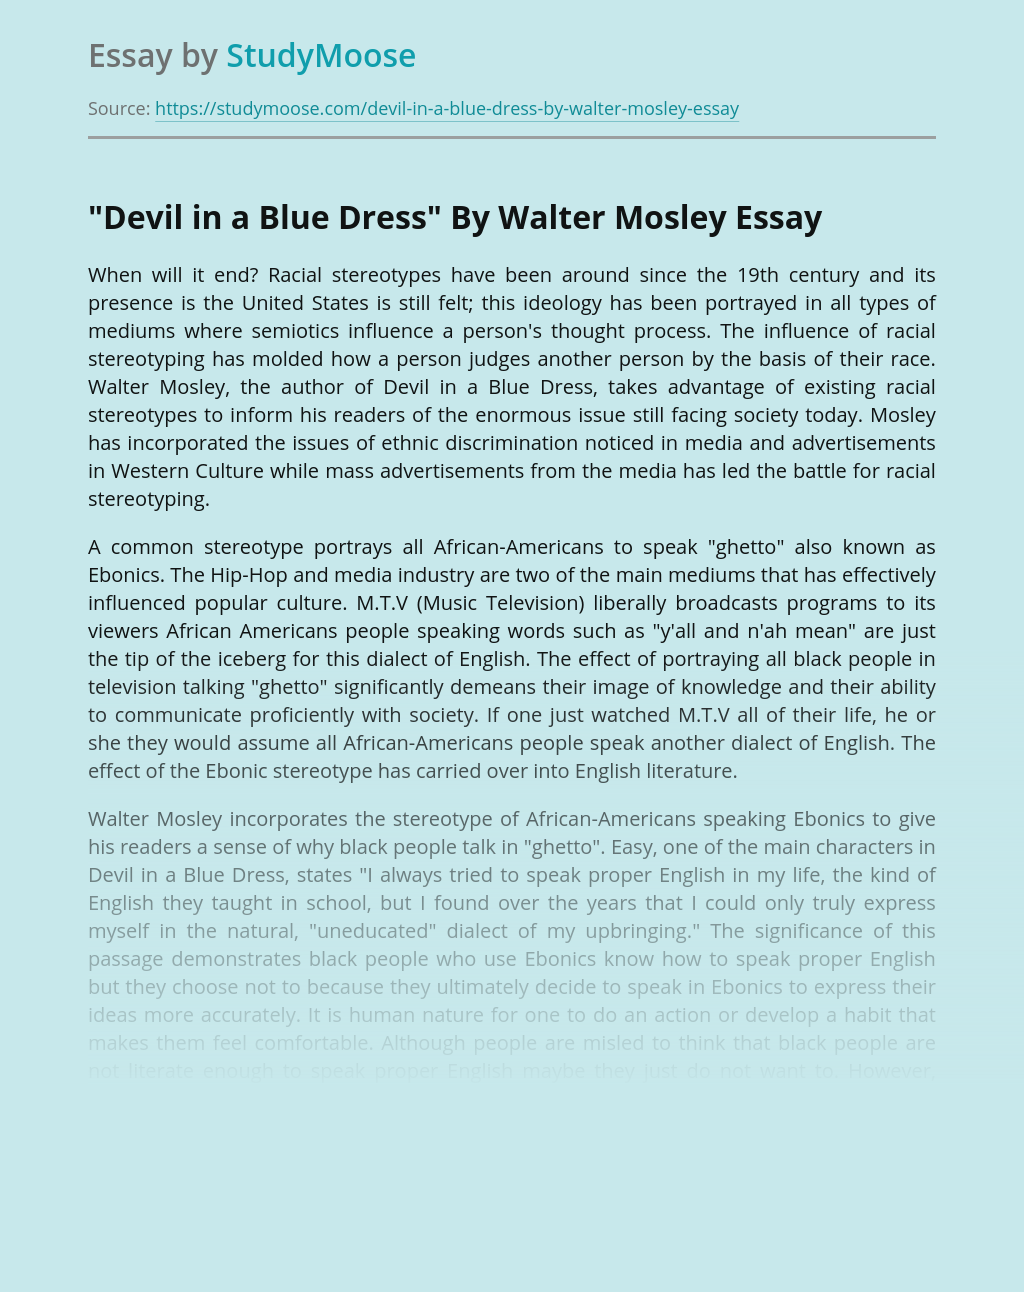 Devil in a Blue Dress on Race and Ethnicity